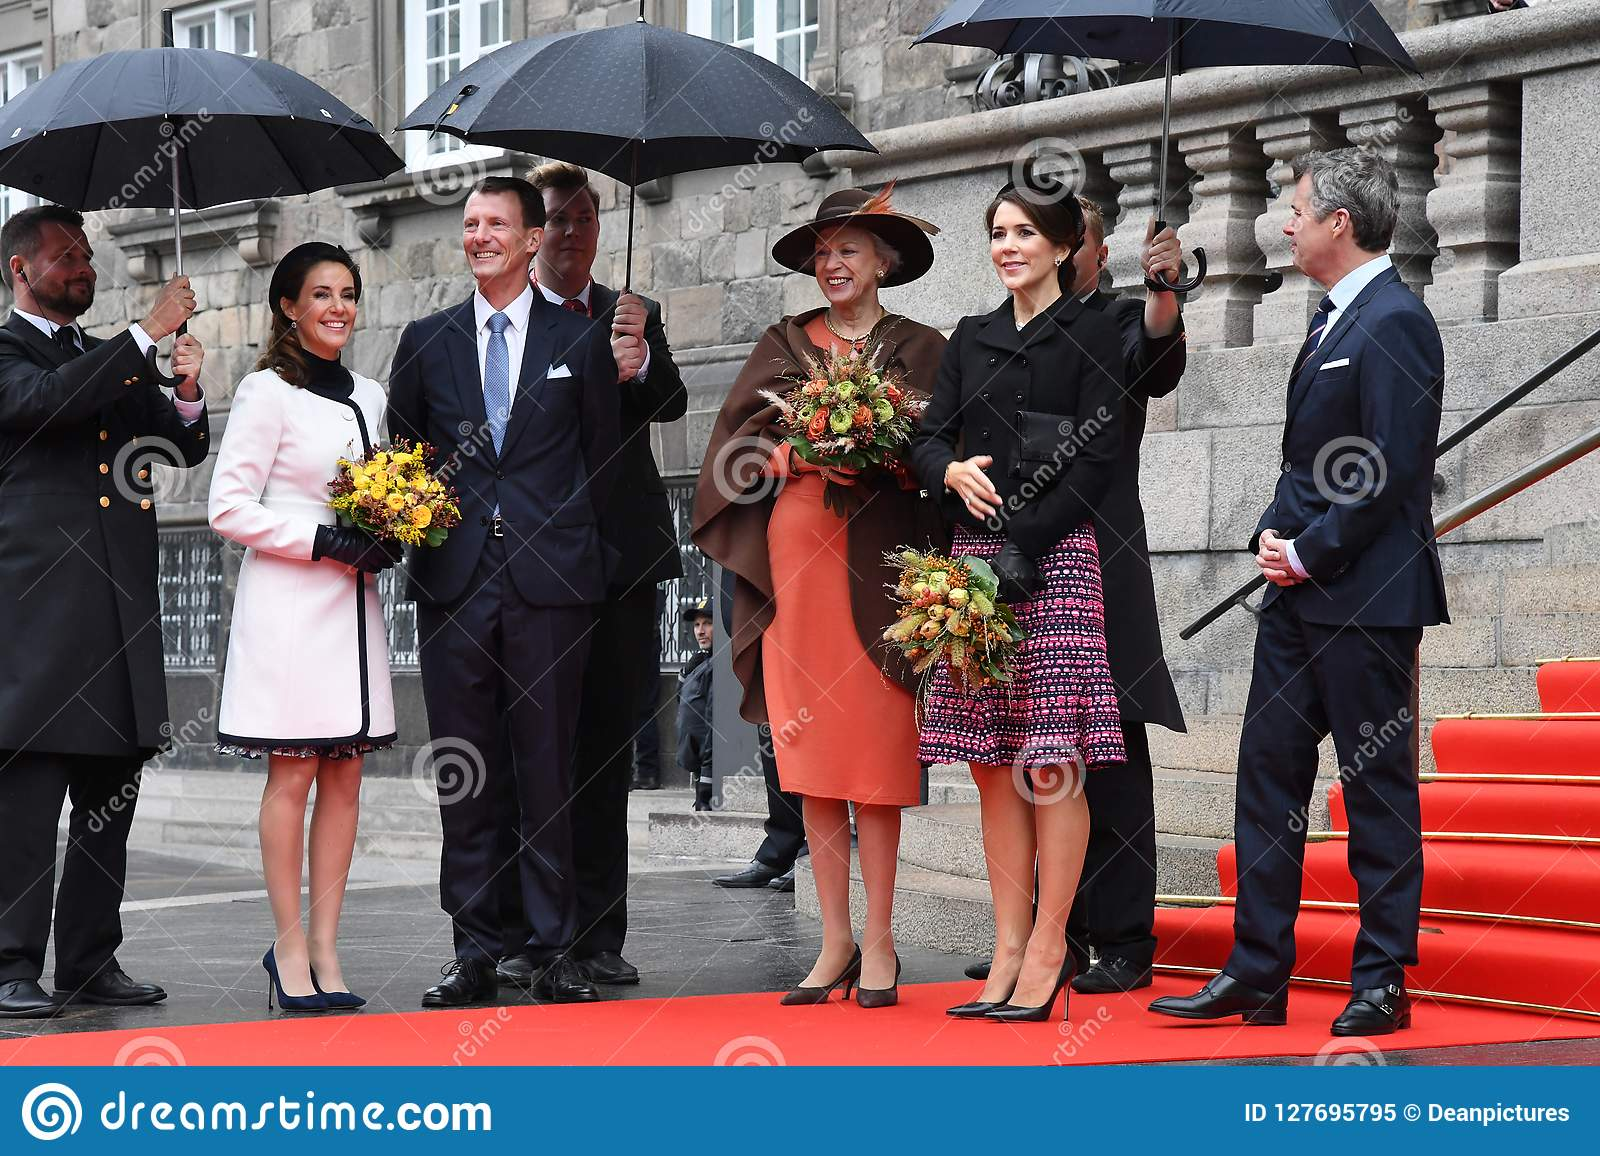 DANISH ROYAL FAMILY ARRIVES AT PARLIAMENT OPENING  Editorial Image